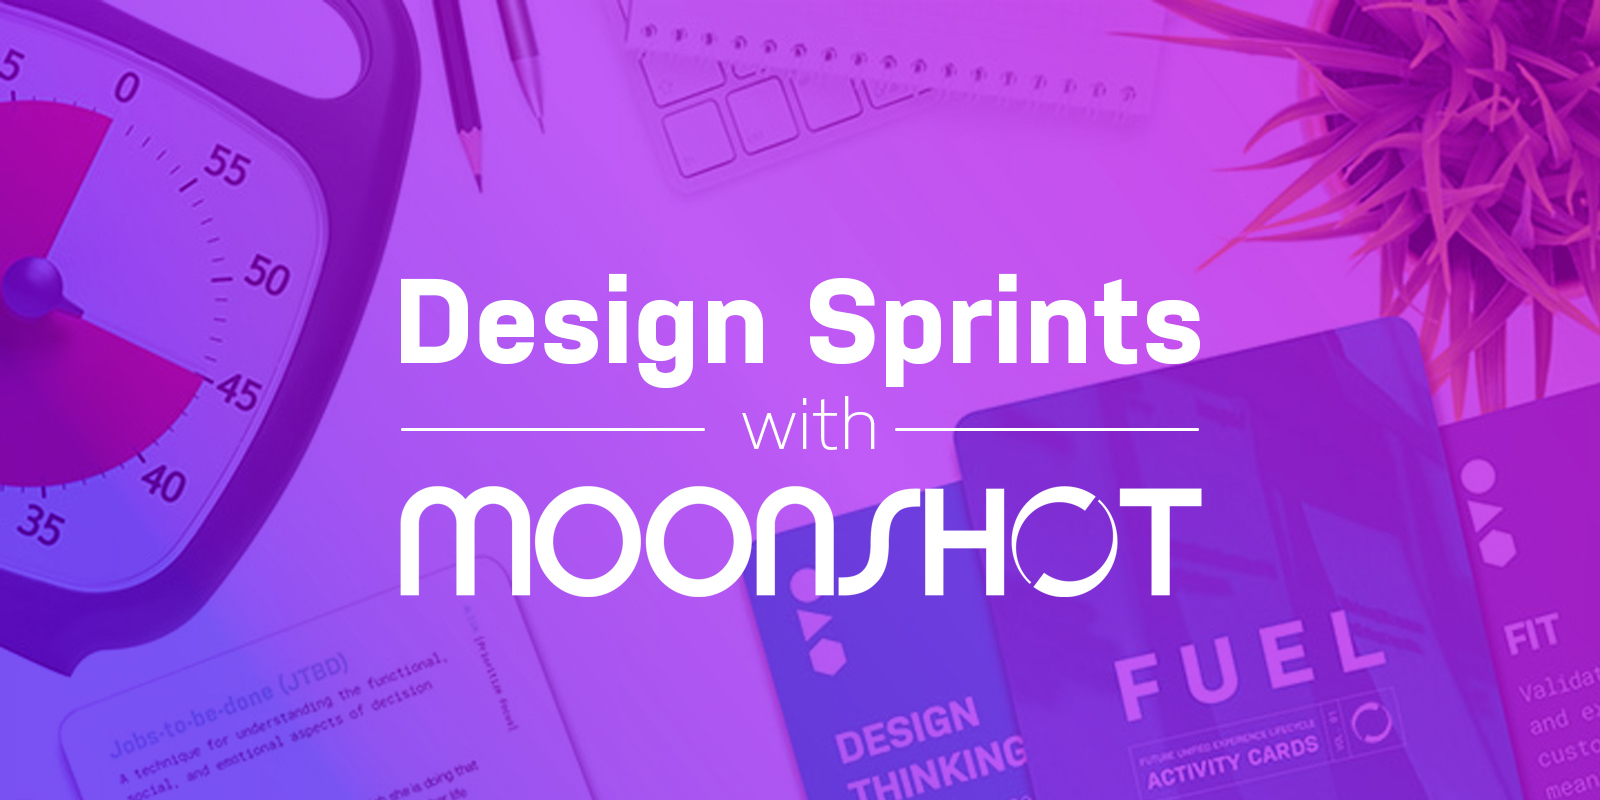 Design Sprints with Moonshot: Tips & tricks to facilitate lovable sprints!